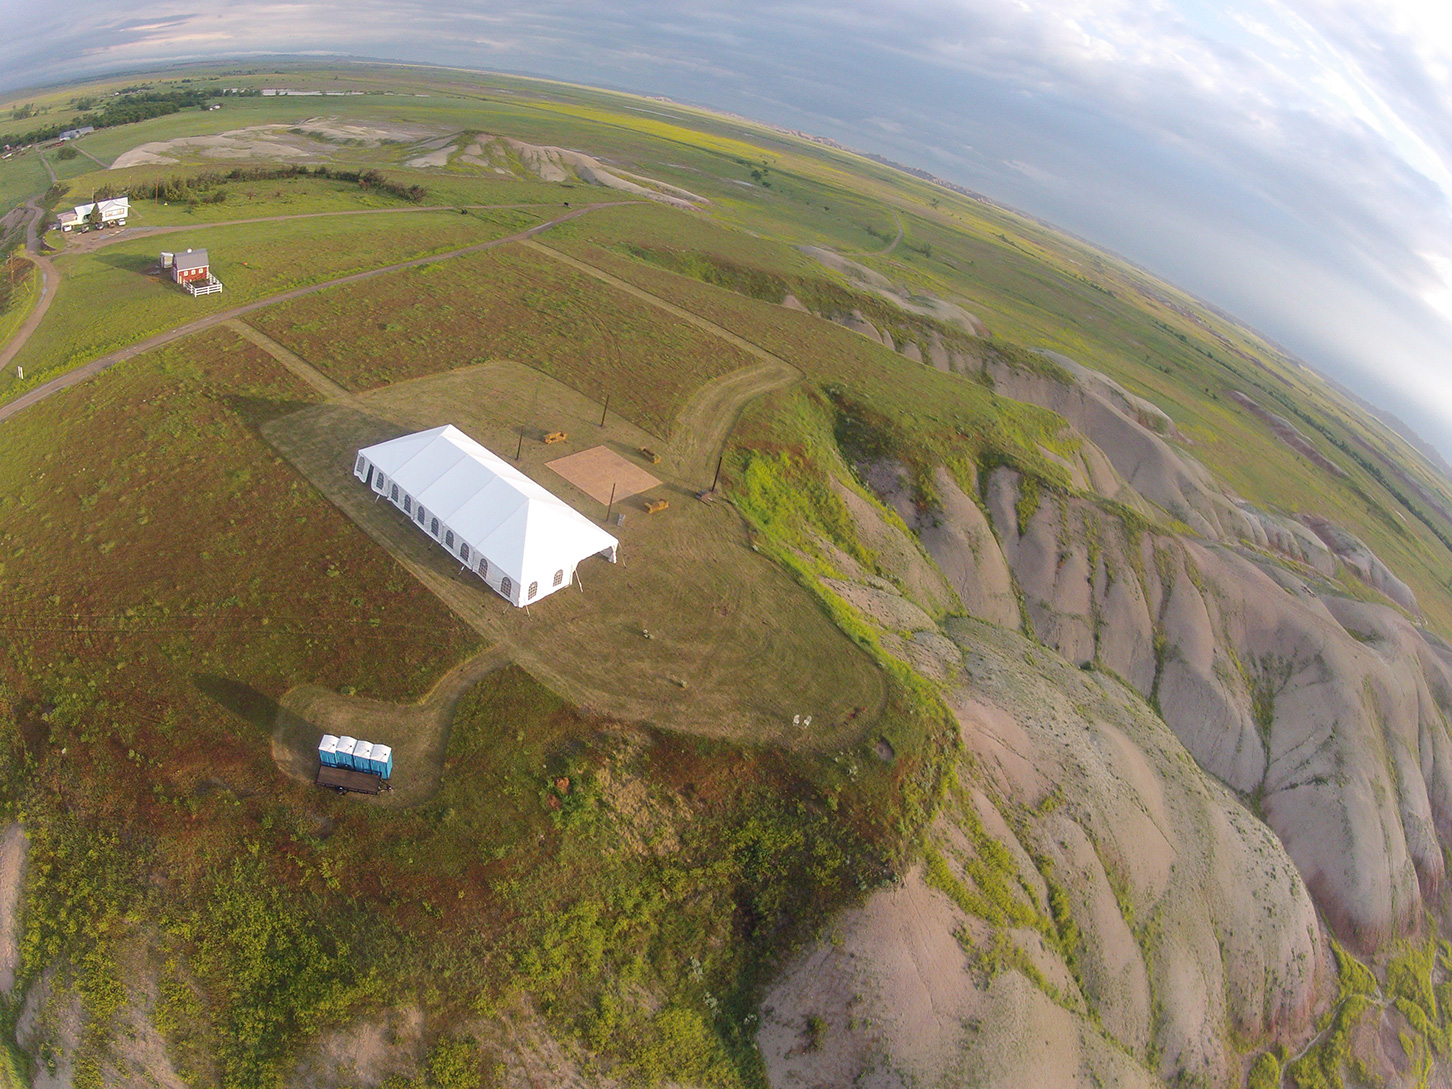 Aerial view of a a wite building